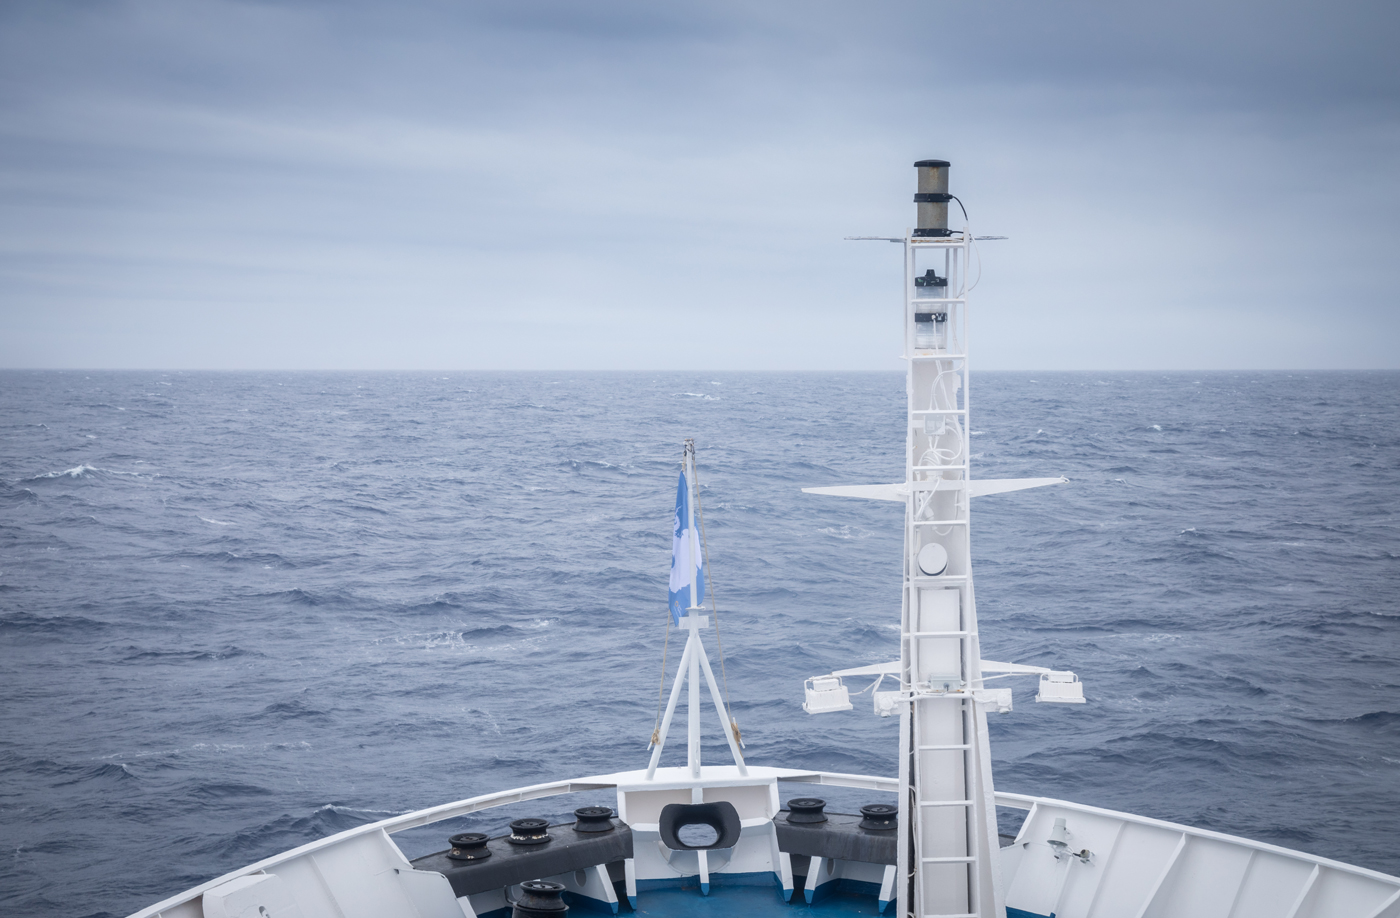 Views from the bridge of the Ocean Diamond. Photo: Acacia Johnson